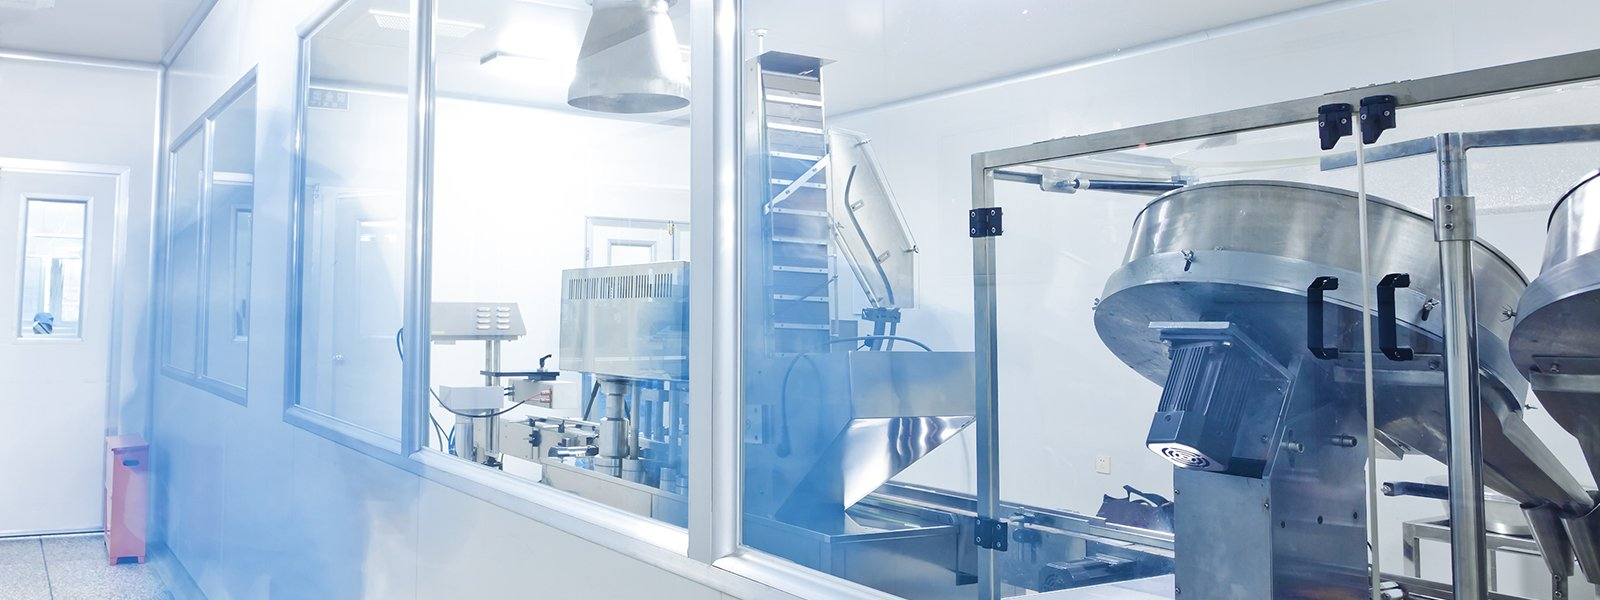 Clean room in a pharmaceutical factory